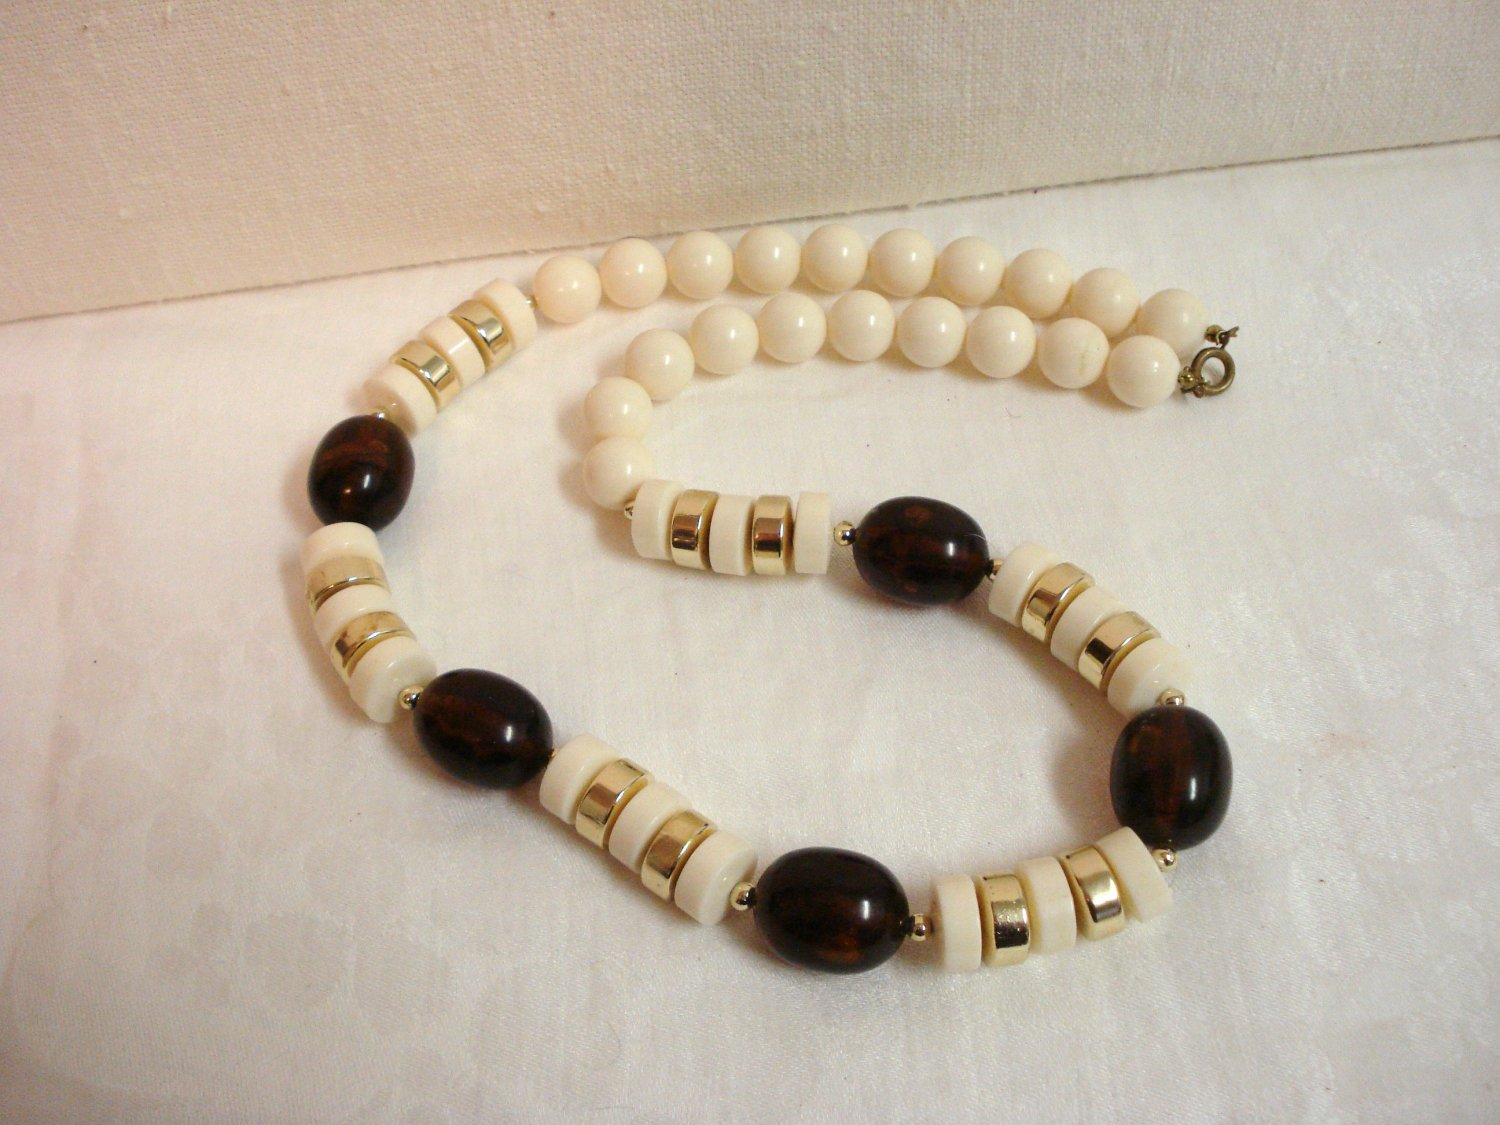 Mixed Lucite plastic bead necklace white, root beer, gold opera length vintage ll3254